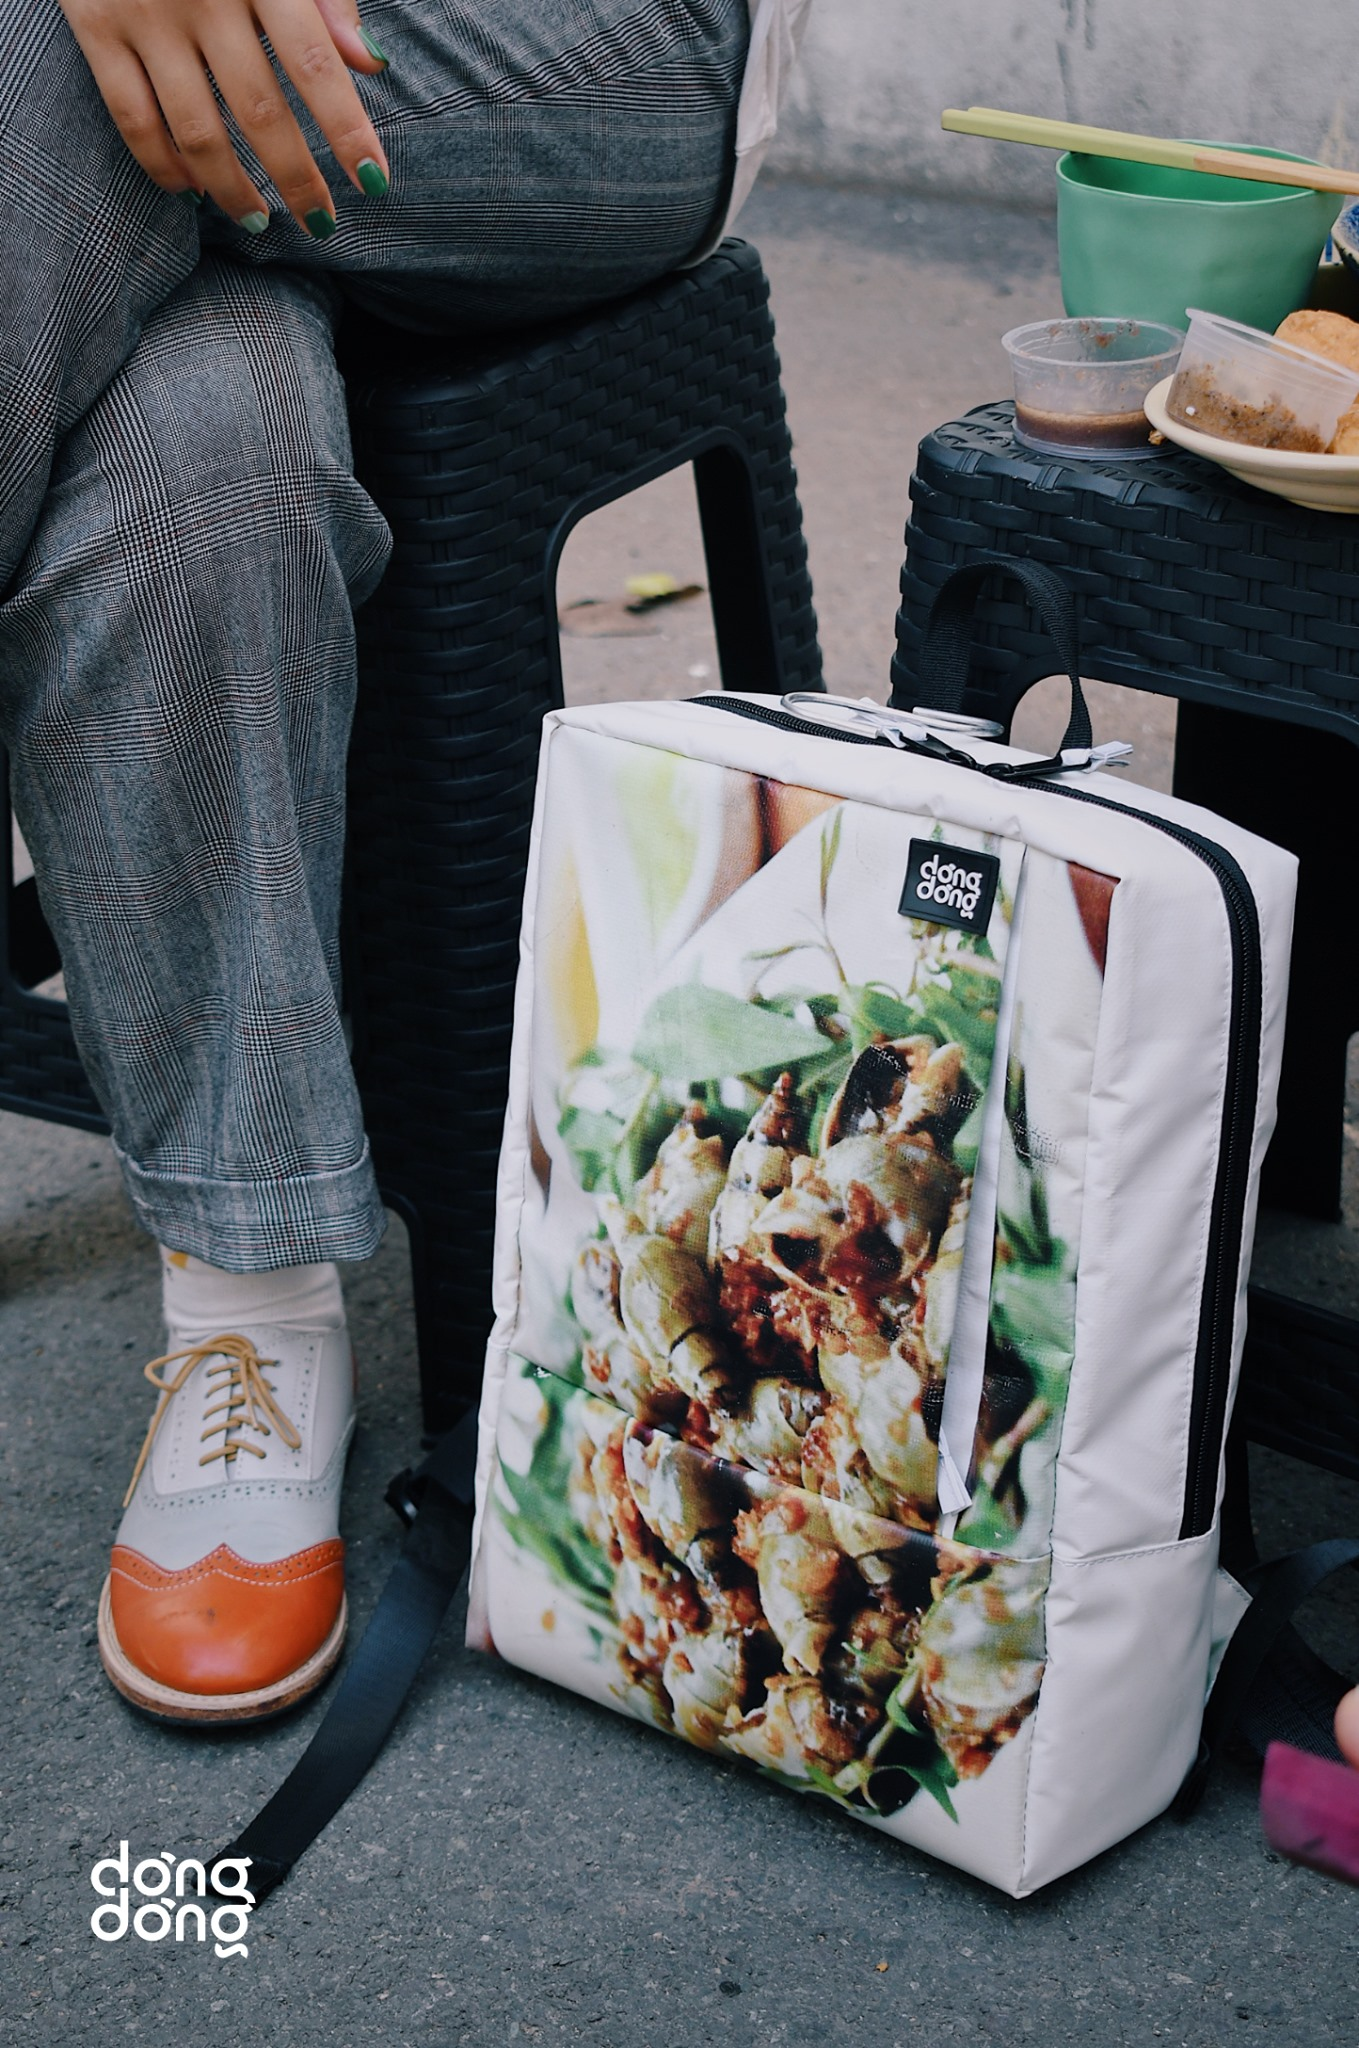 A backpack made from old awning tarp of a snail restaurant in Ho Chi Minh City by Dong Dong Sai Gon is seen in a promo photo published on the brand's Facebook page.